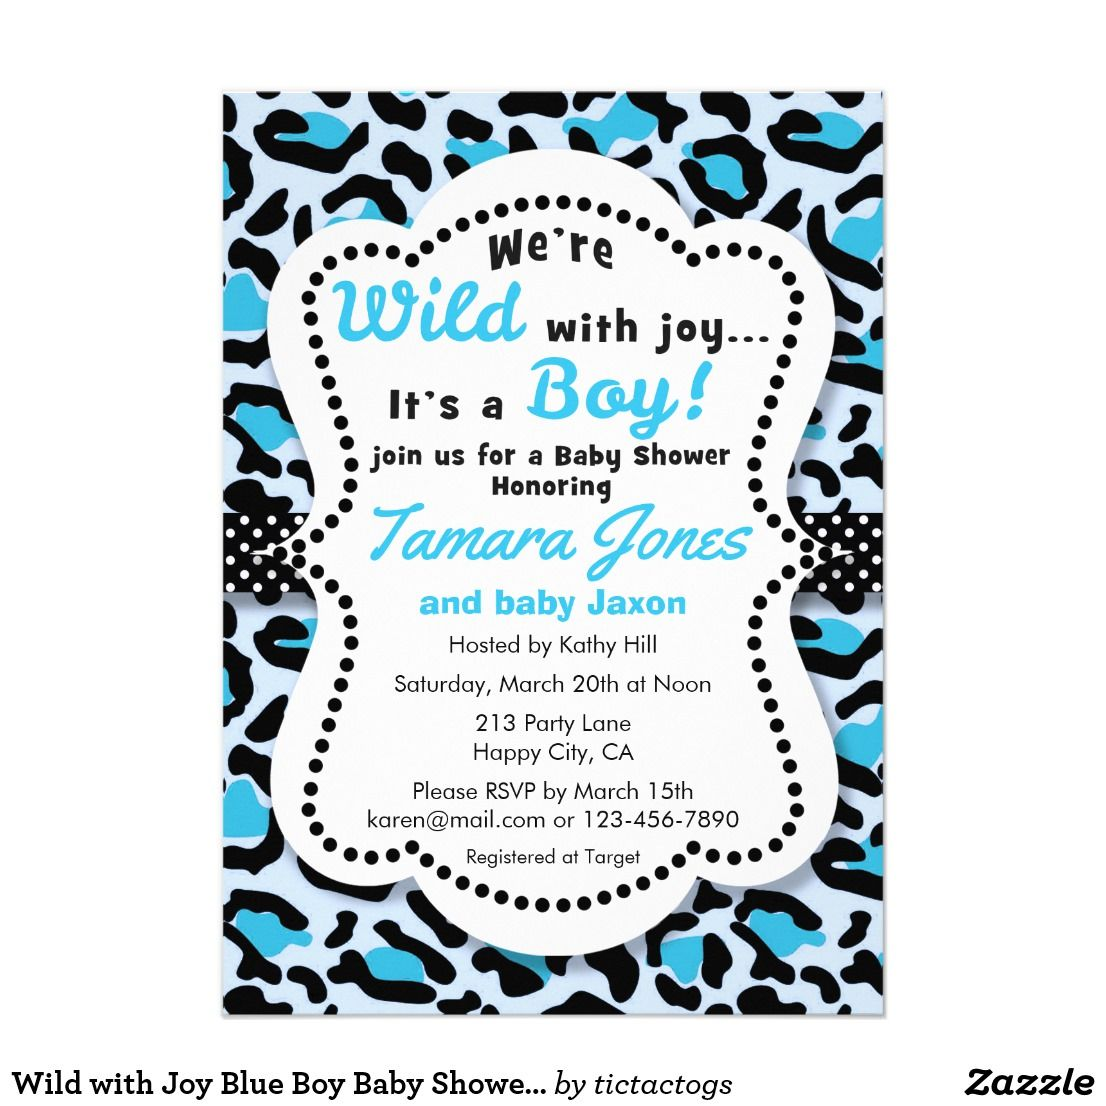 Wild with Joy Blue Boy Baby Shower Invitation Get wild with this ...